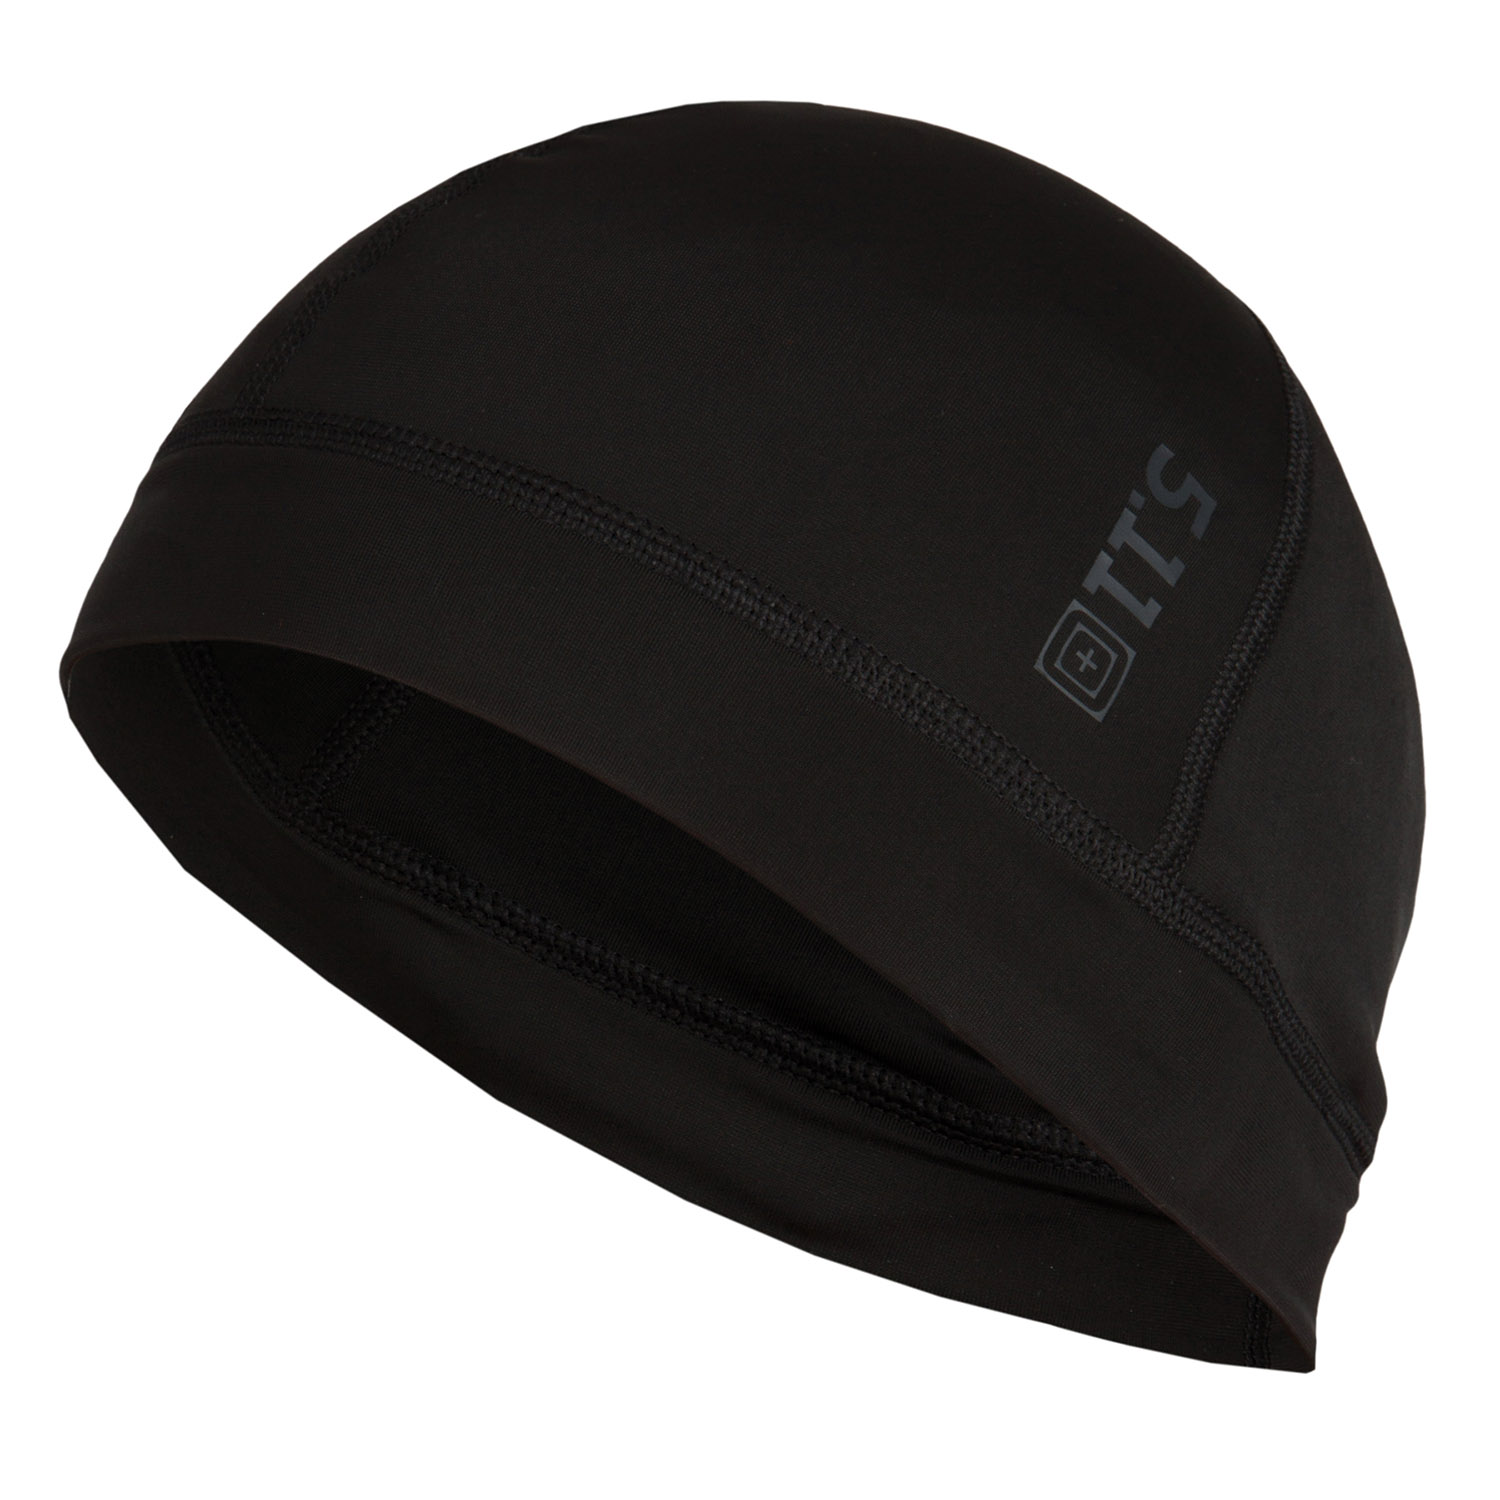 5.11 Tactical Under Helmet Skull Cap